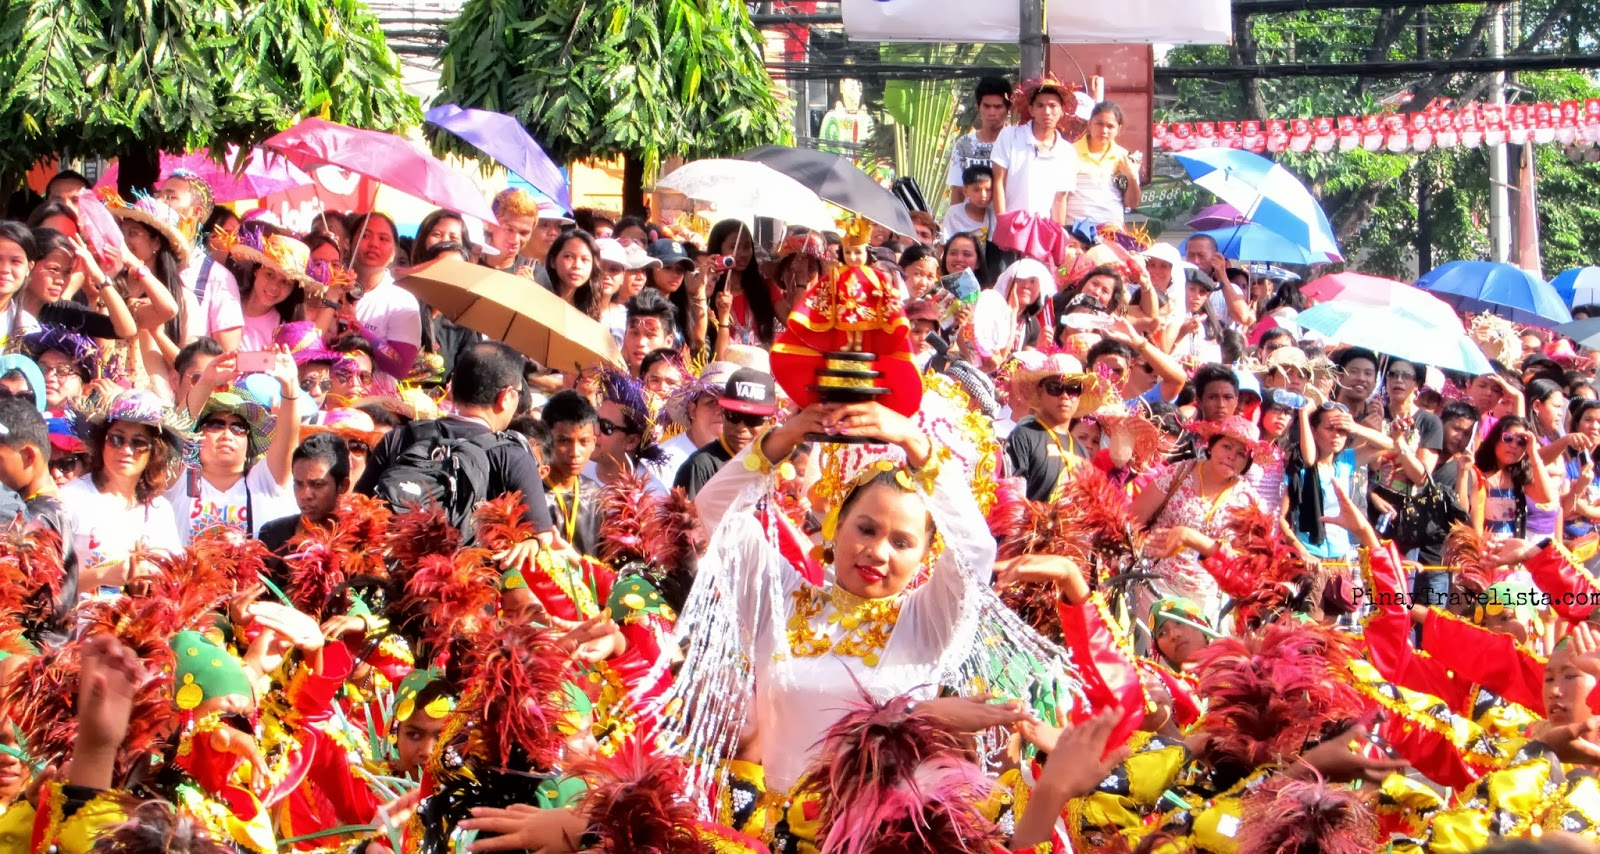 sinulog festival in cebu Actresses bea alonzo and maja salvador were among the celebrity guests that added shine to this year's sinulog-santo niño festival in cebu city.